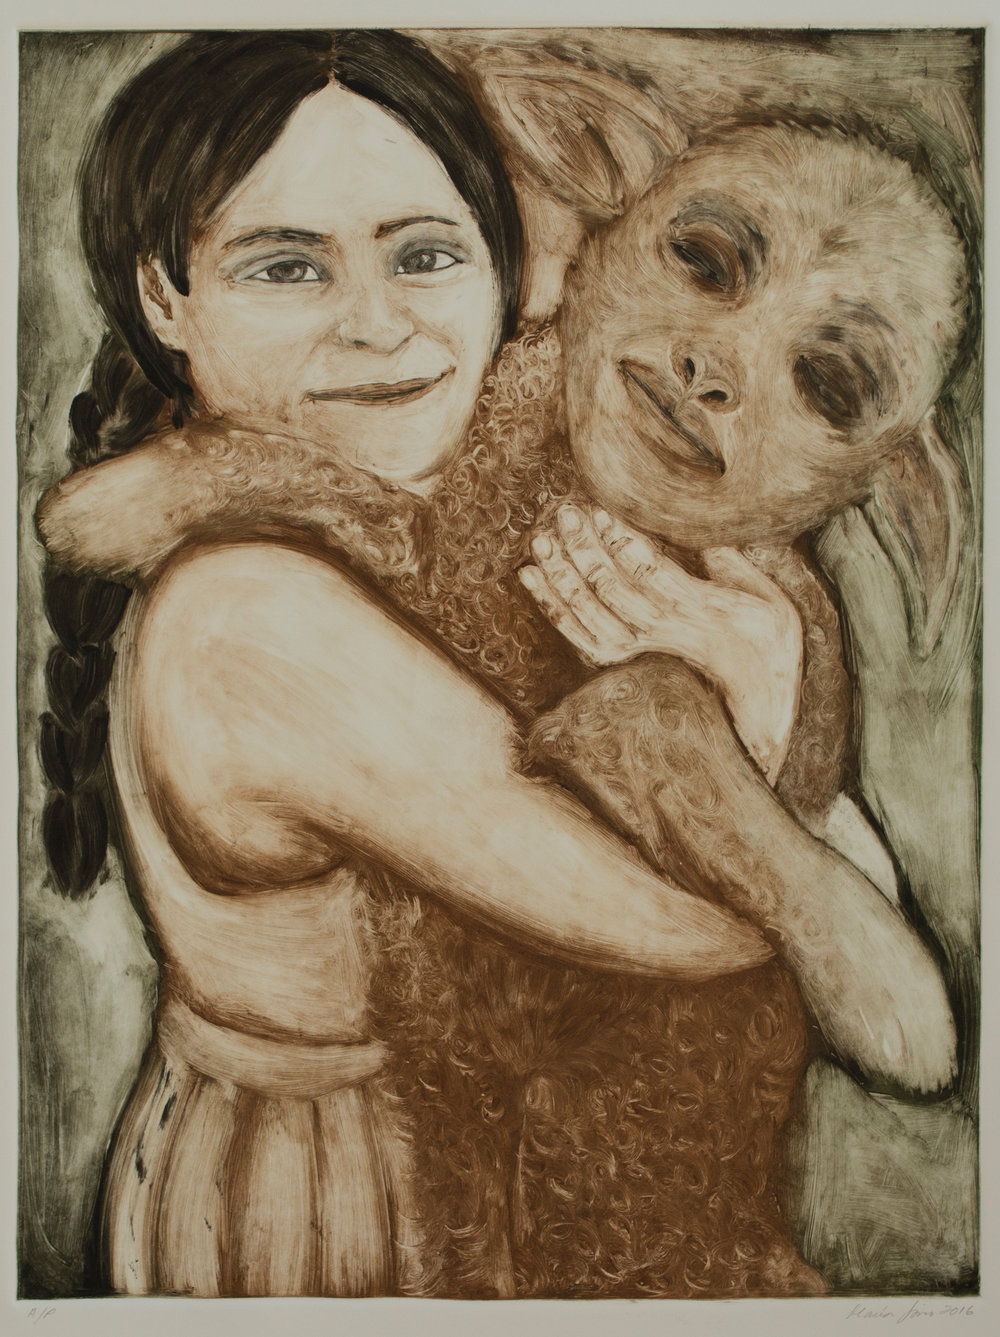 Copy of Girl with Lamb, 2015